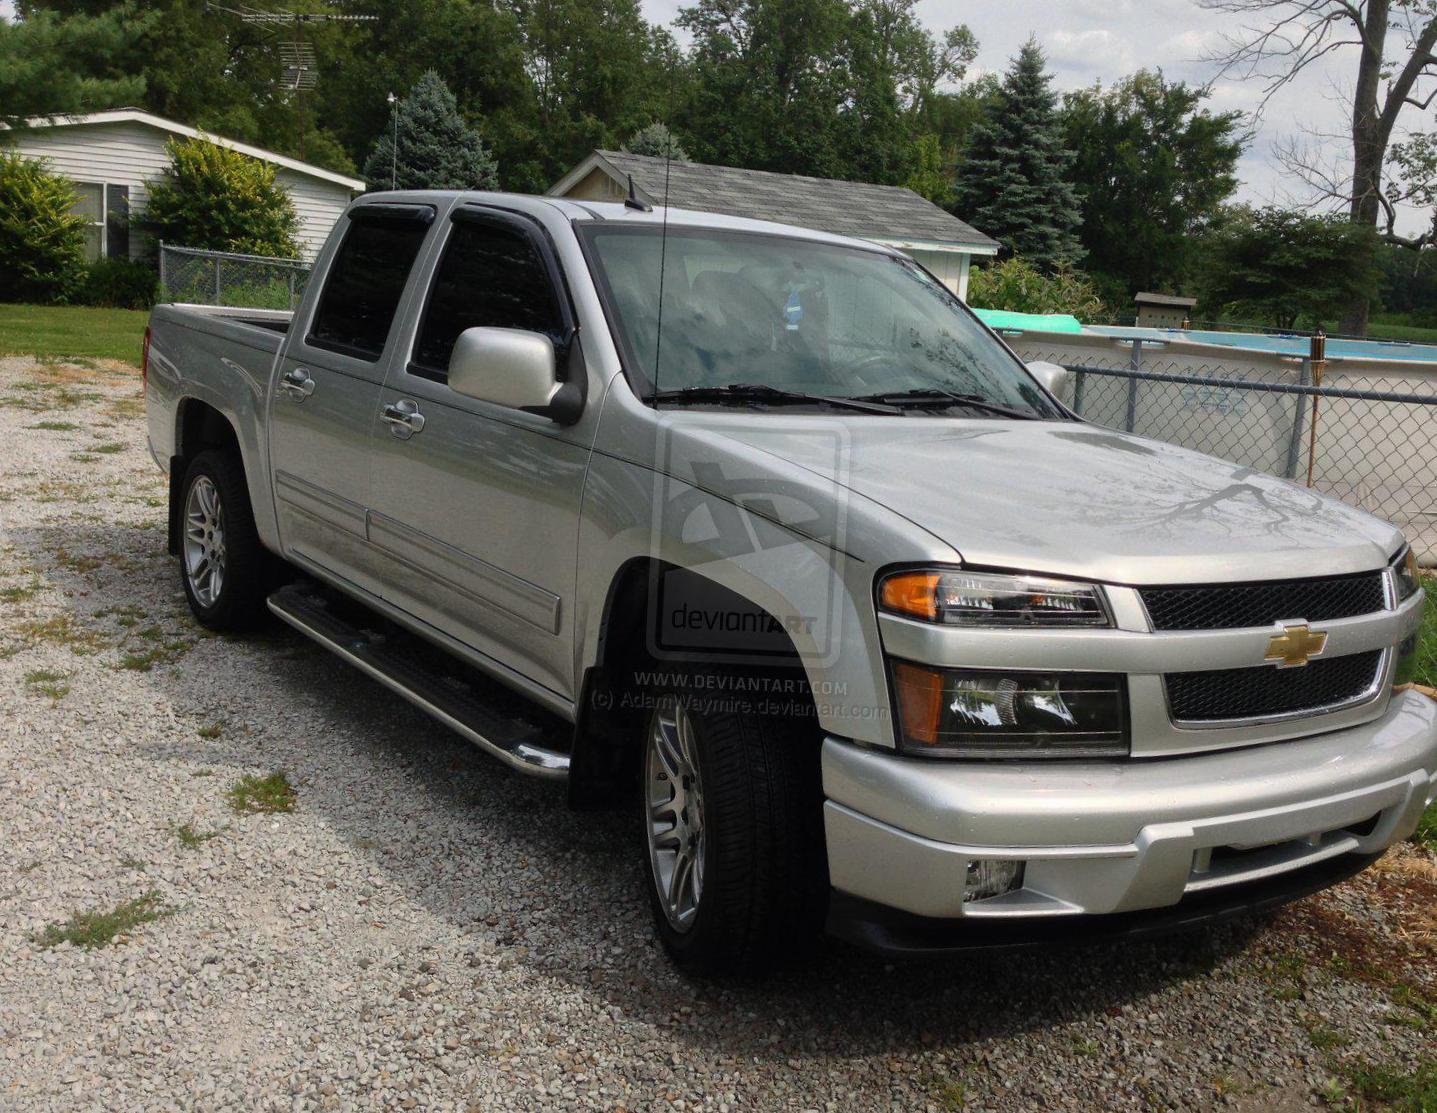 Chevrolet Colorado Crew Cab model 2010